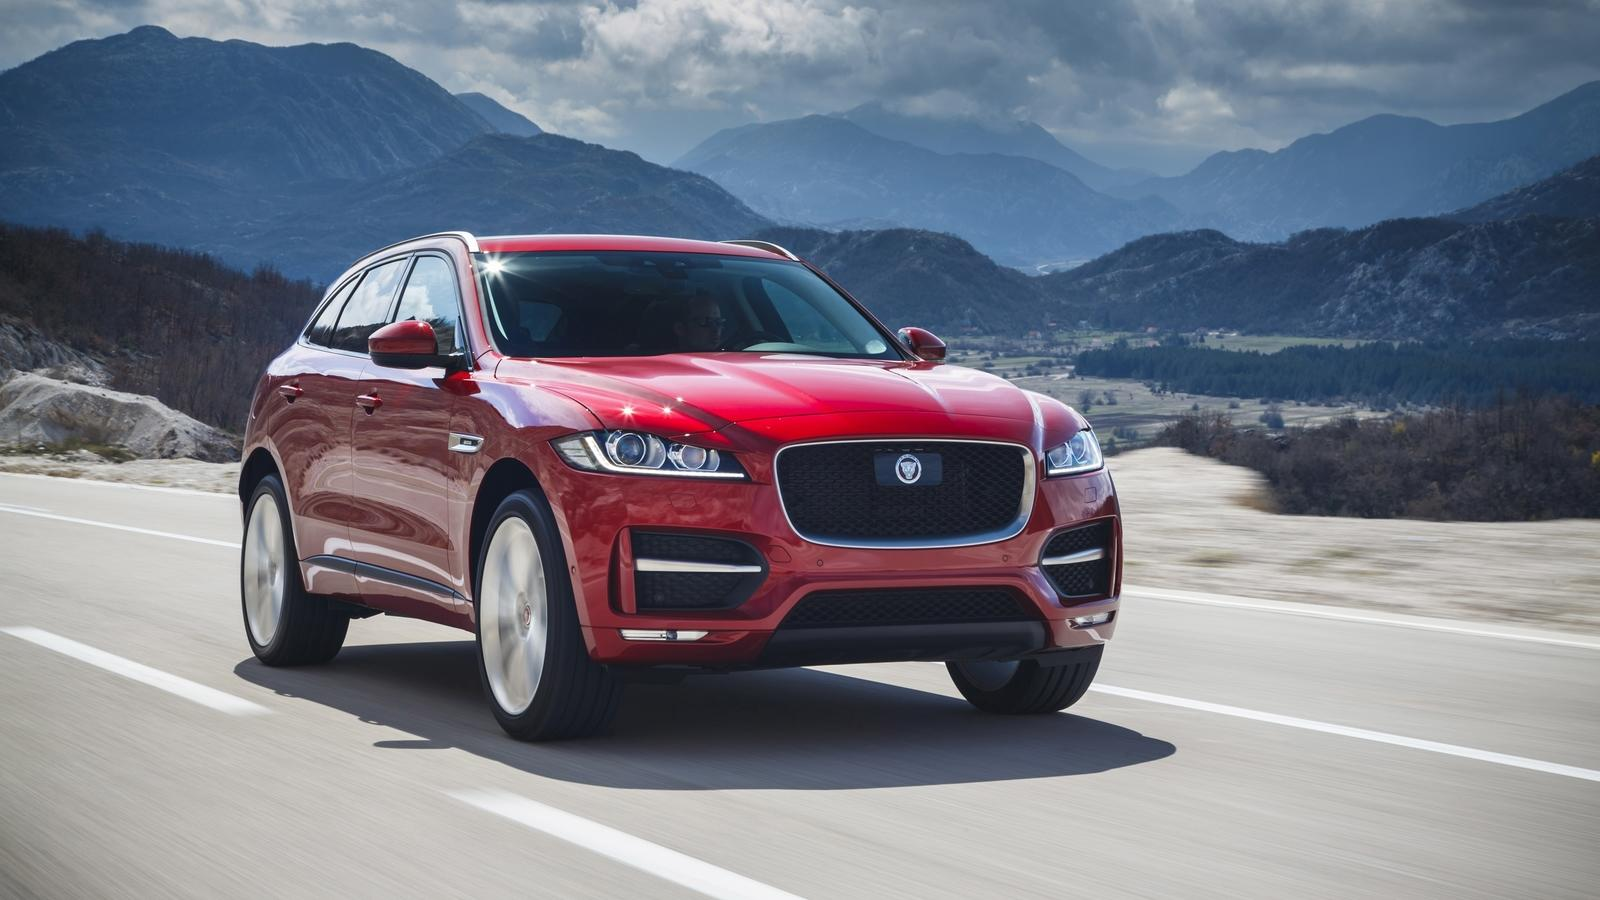 Types Of Suvs >> Jaguar F-Pace: Latest News, Reviews, Specifications ...